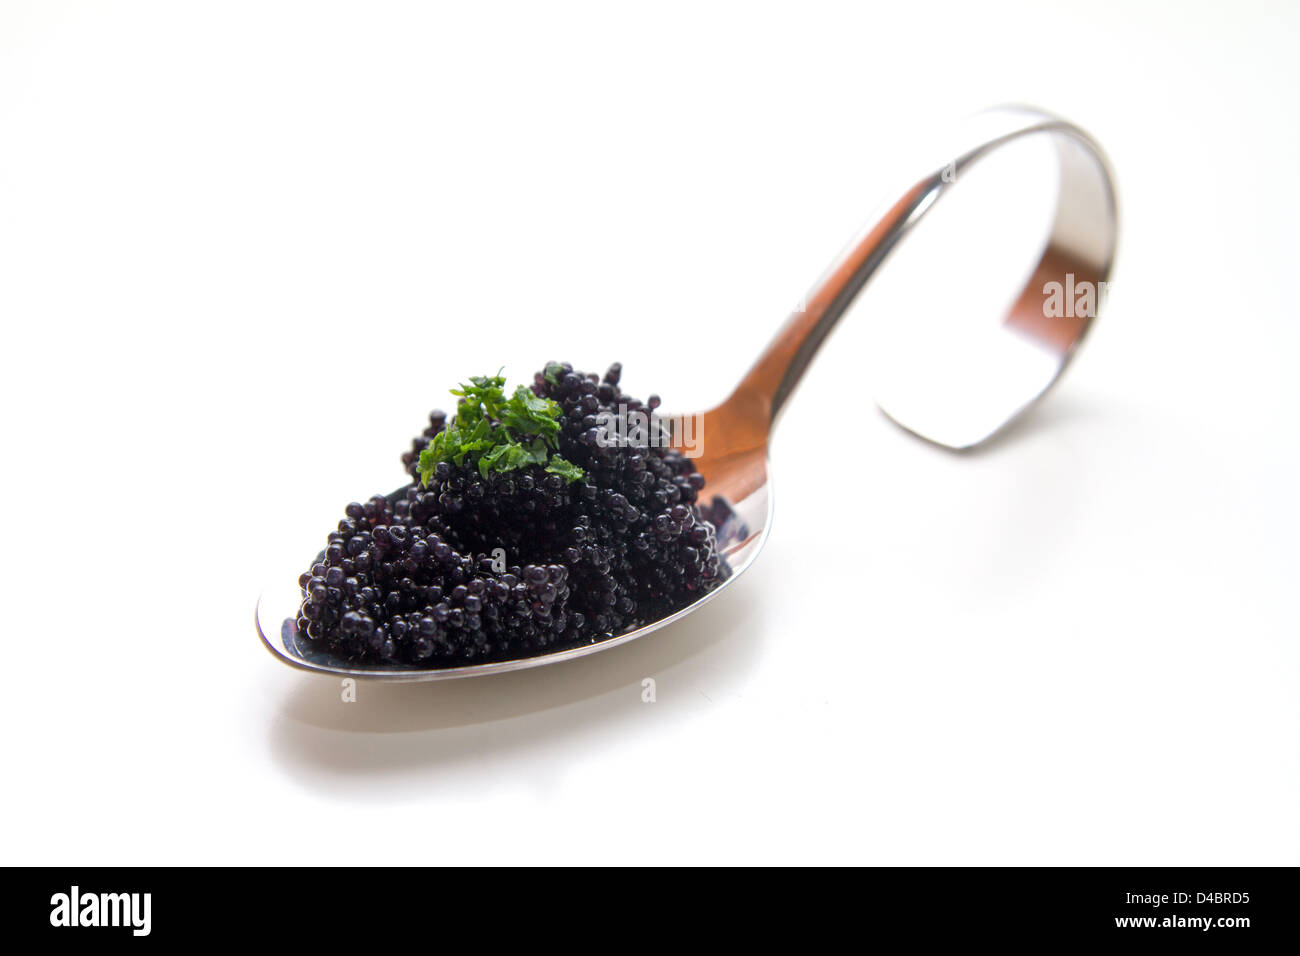 Caviar on a spoon - Stock Image